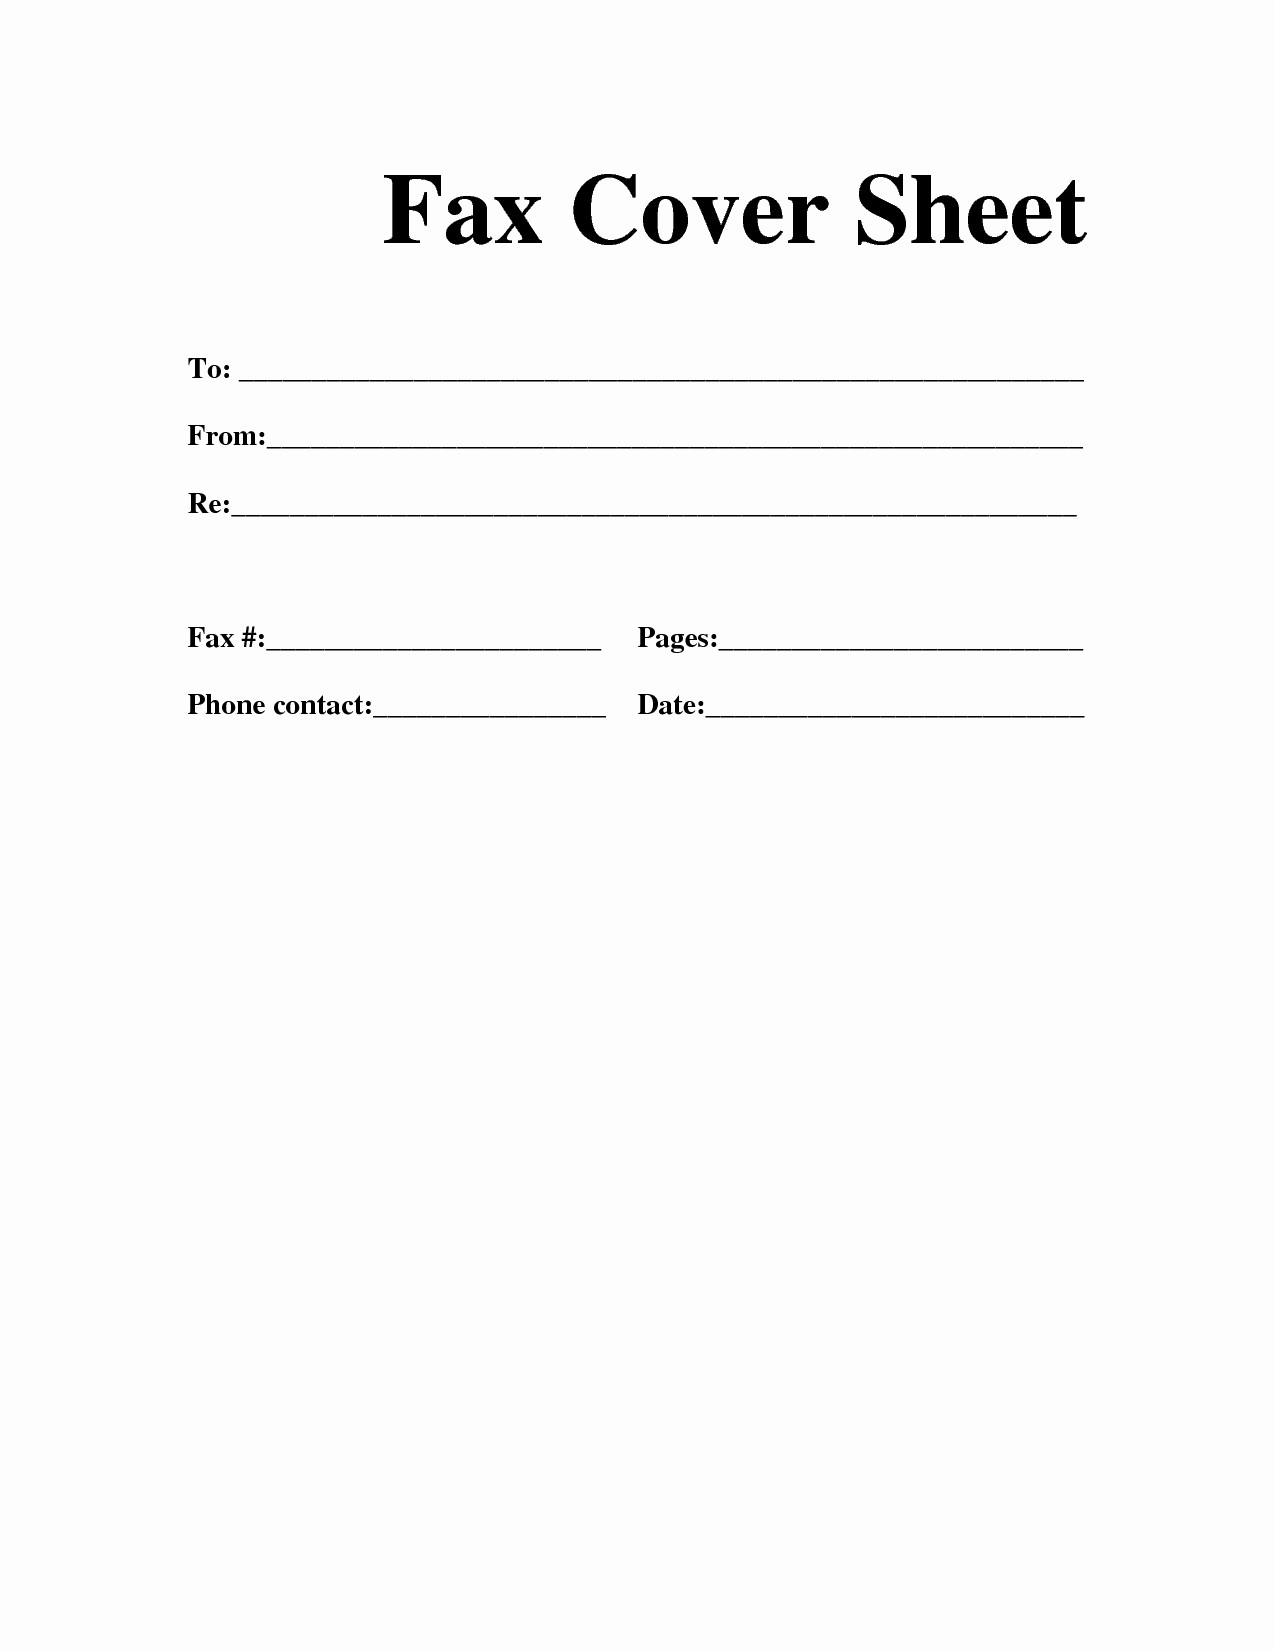 Fax Cover Sheet Microsoft Office Inspirational Fax Cover Sheet for Word Portablegasgrillweber